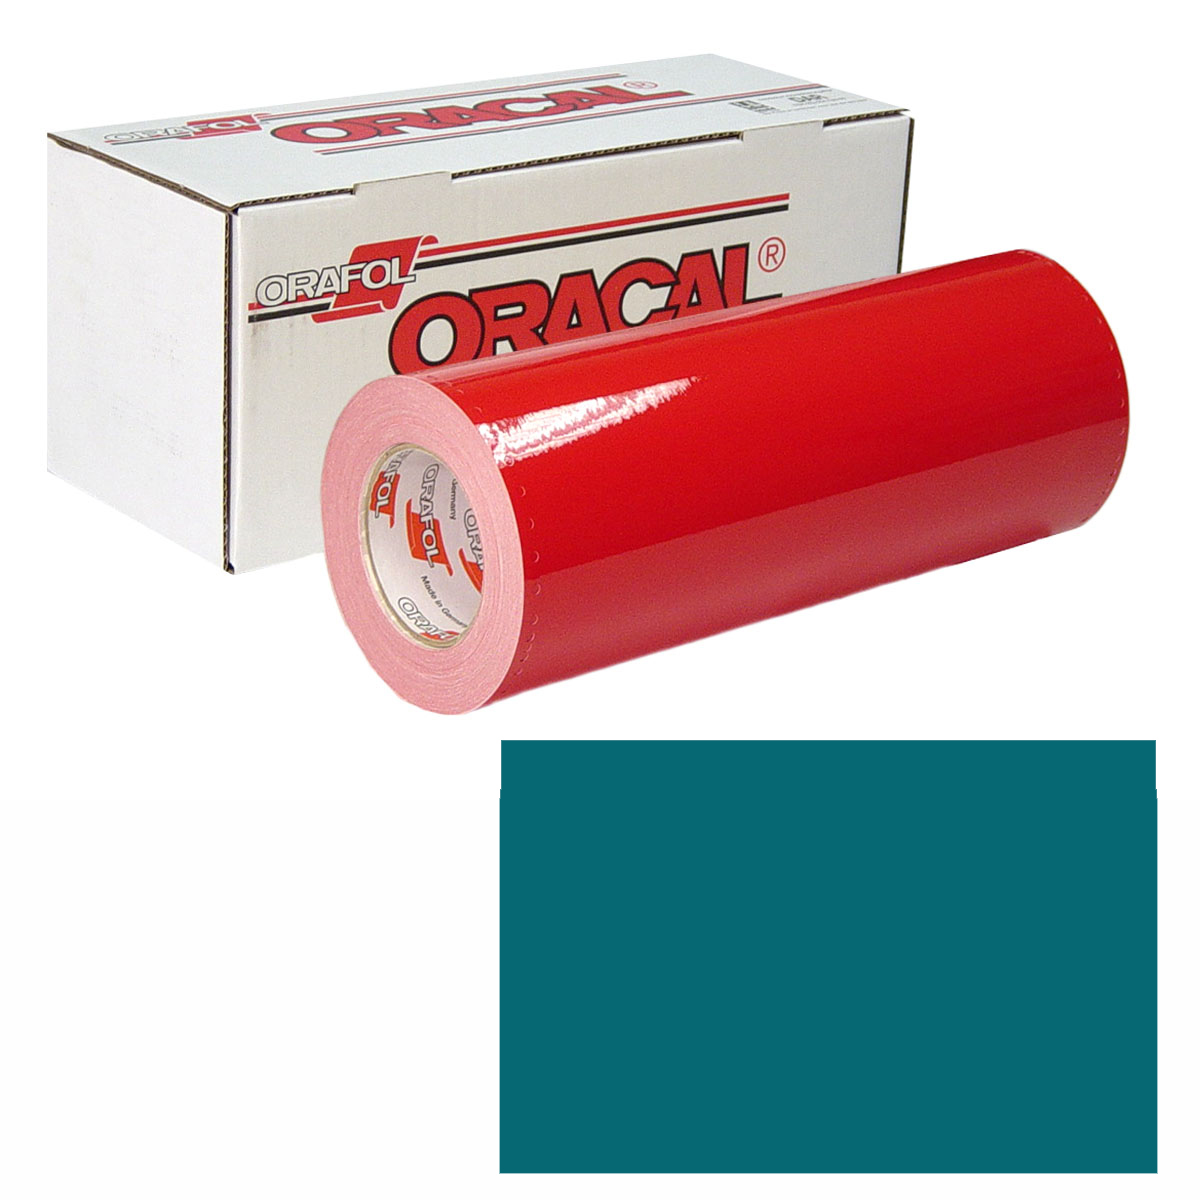 ORACAL 951M Unp 24in X 10yd 637 Teal Metallic